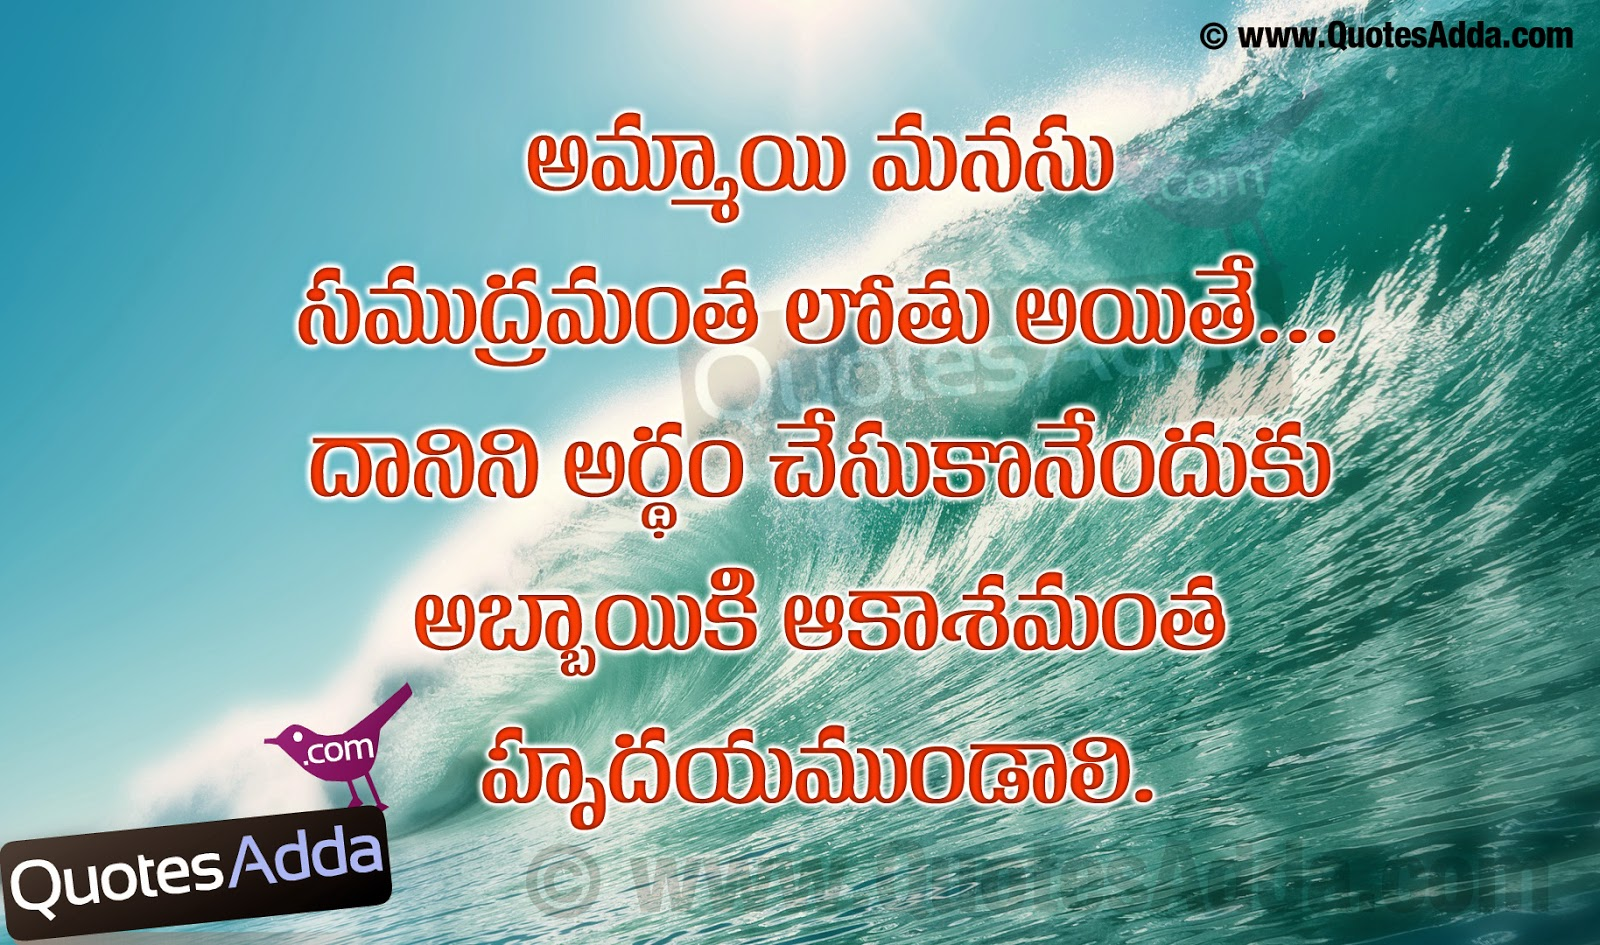 Telugu Love Quotes Simple Telugunewlovequotationsjun29Quotesadda 1600×945